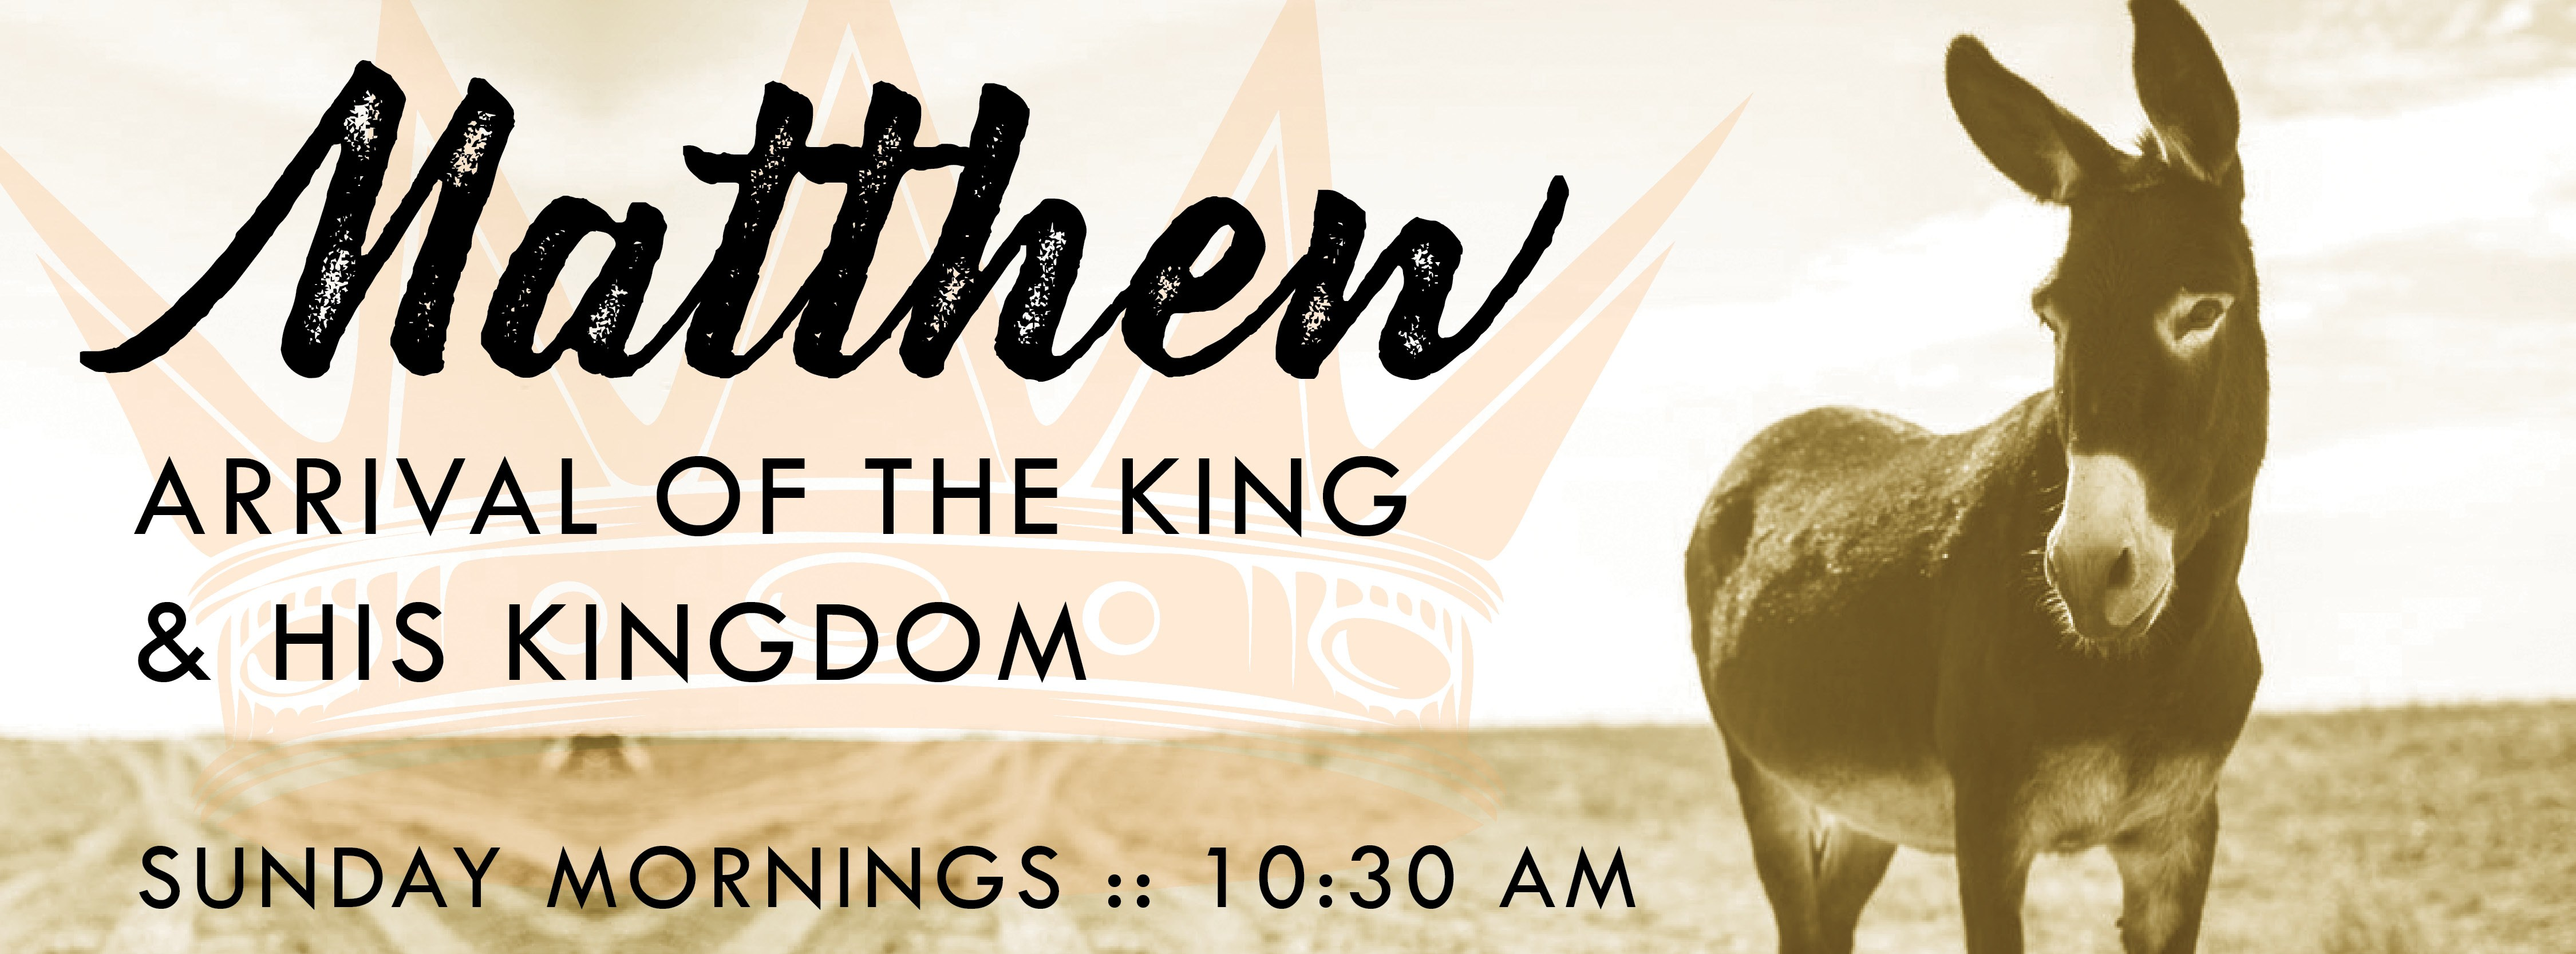 The Kingdom Messiah Sends Kingdom Shepherds